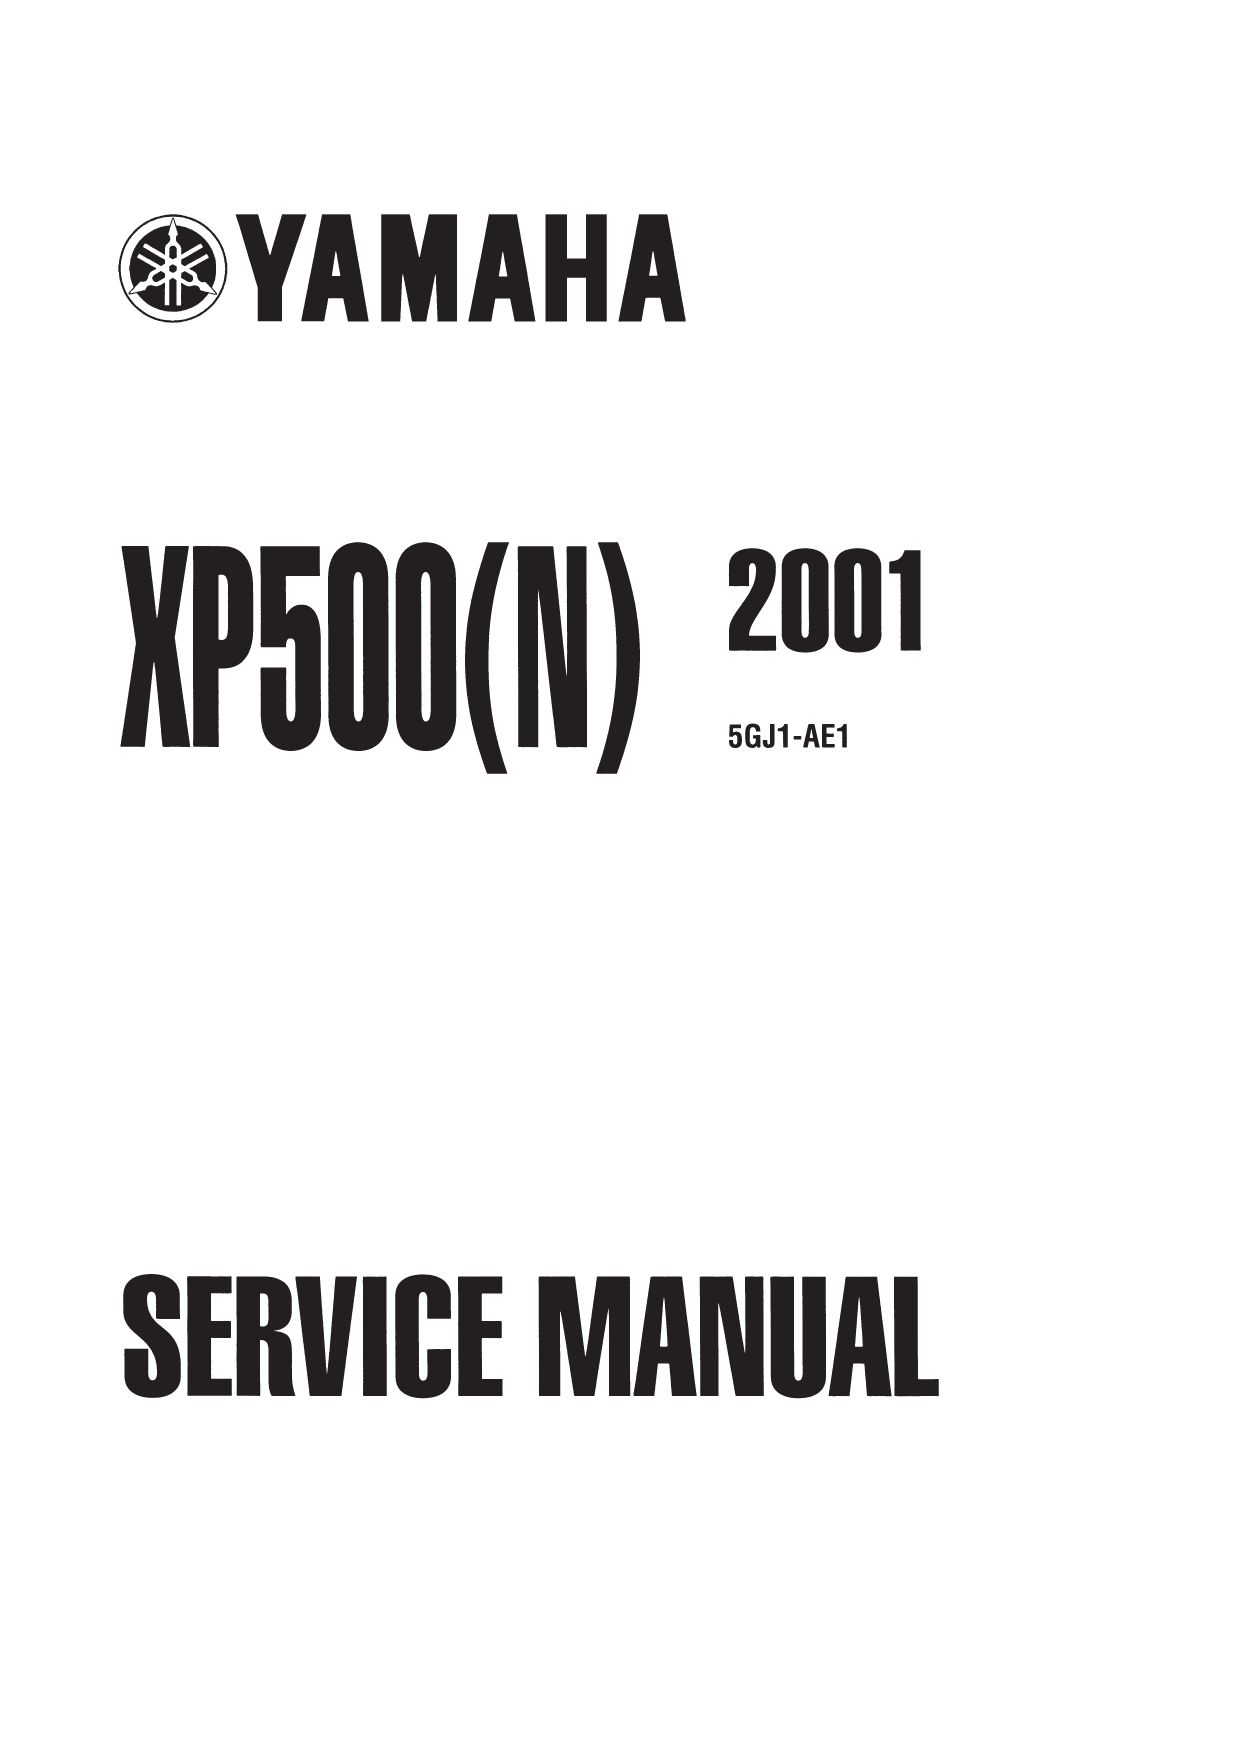 Yamaha XP 500 N T-Max 5GJ1 - Regulator//Rectifier 500 CC 2001